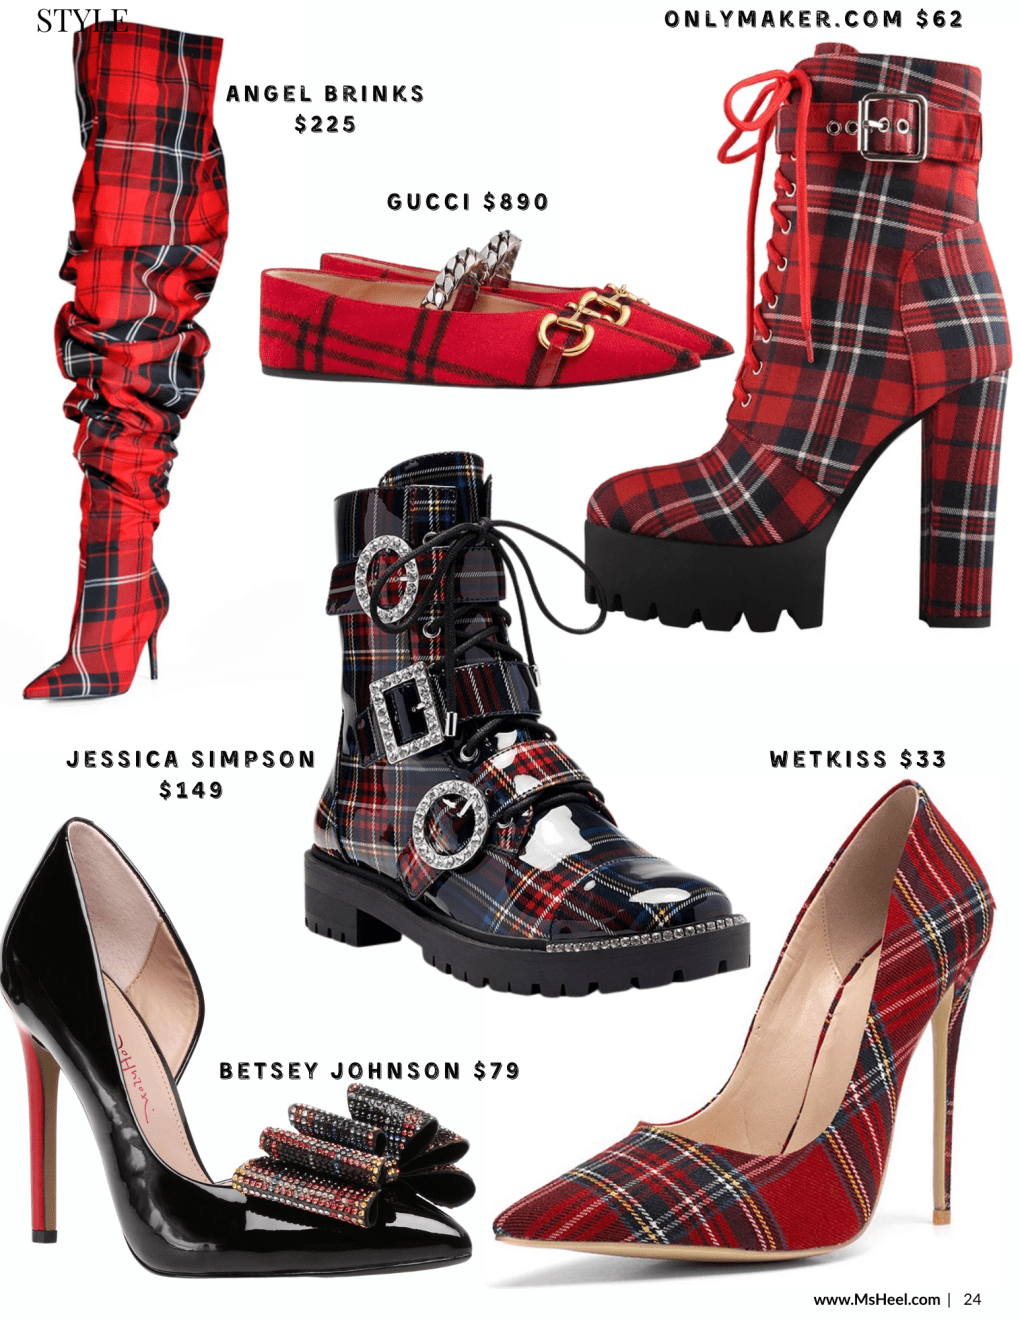 Do Be 'Tartan' For The Party! How To Wear Christmas Plaid to any party or to work this holiday season. Tartan plaid shoes by Gucci, Angel Brinks, Jessica Simpson, Wetkiss, Only Maker and Betsey Johson.